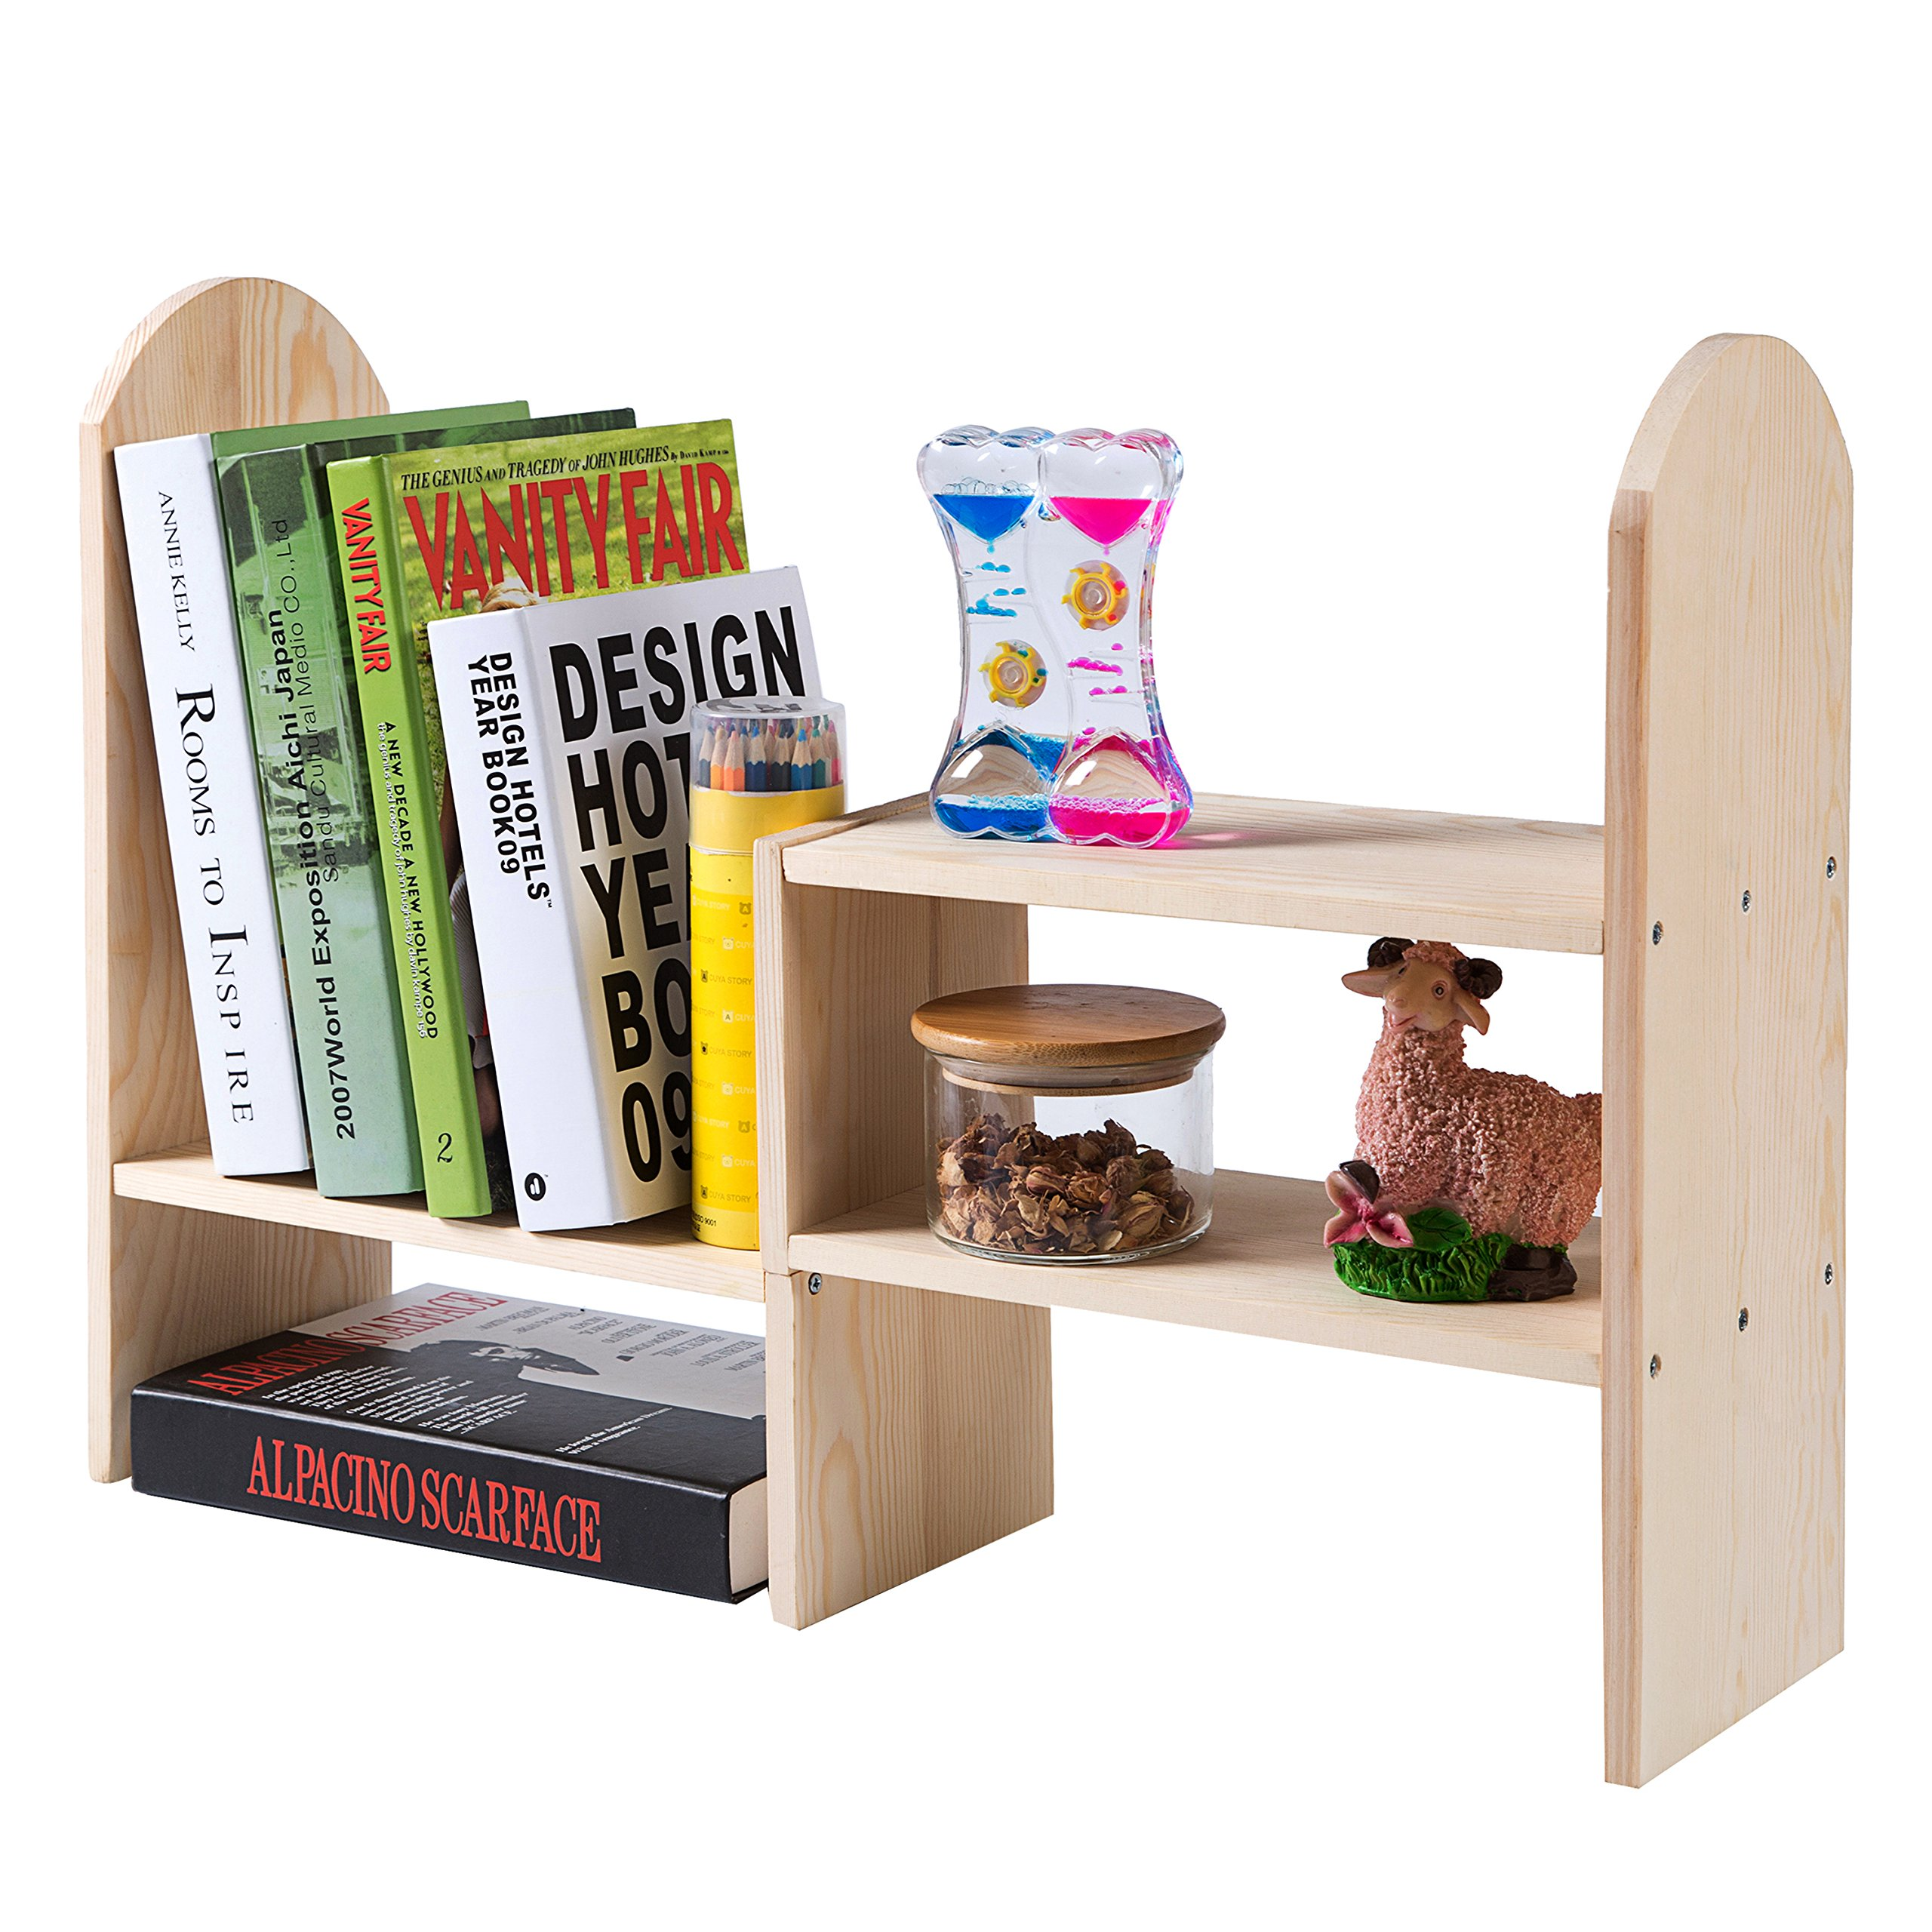 Natural Bamboo Wood Modular Desktop Bookcase, Expandable Shelving Unit Organizer